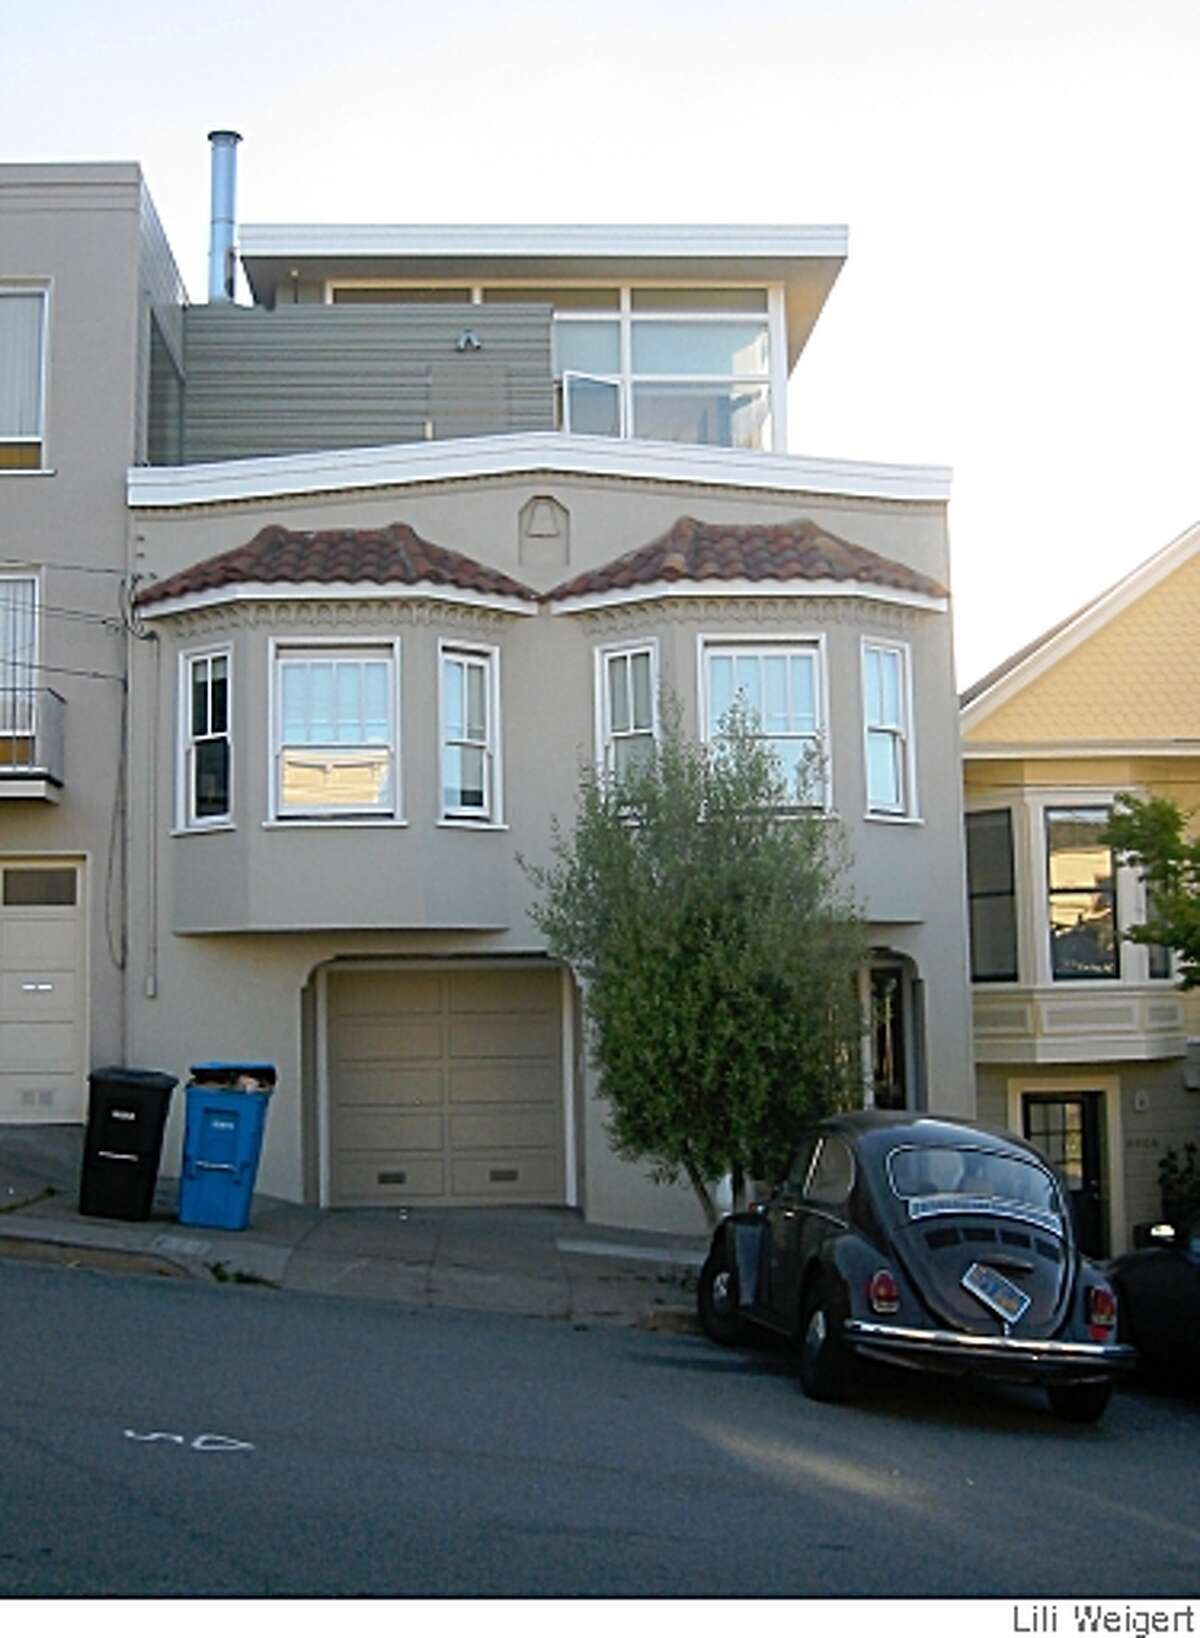 A house in the Marina District referred to in 5/25/08 Real Estate story by Lili Weigert as the Jetson House. It shows how incongruous plans can sometimes get city approval.